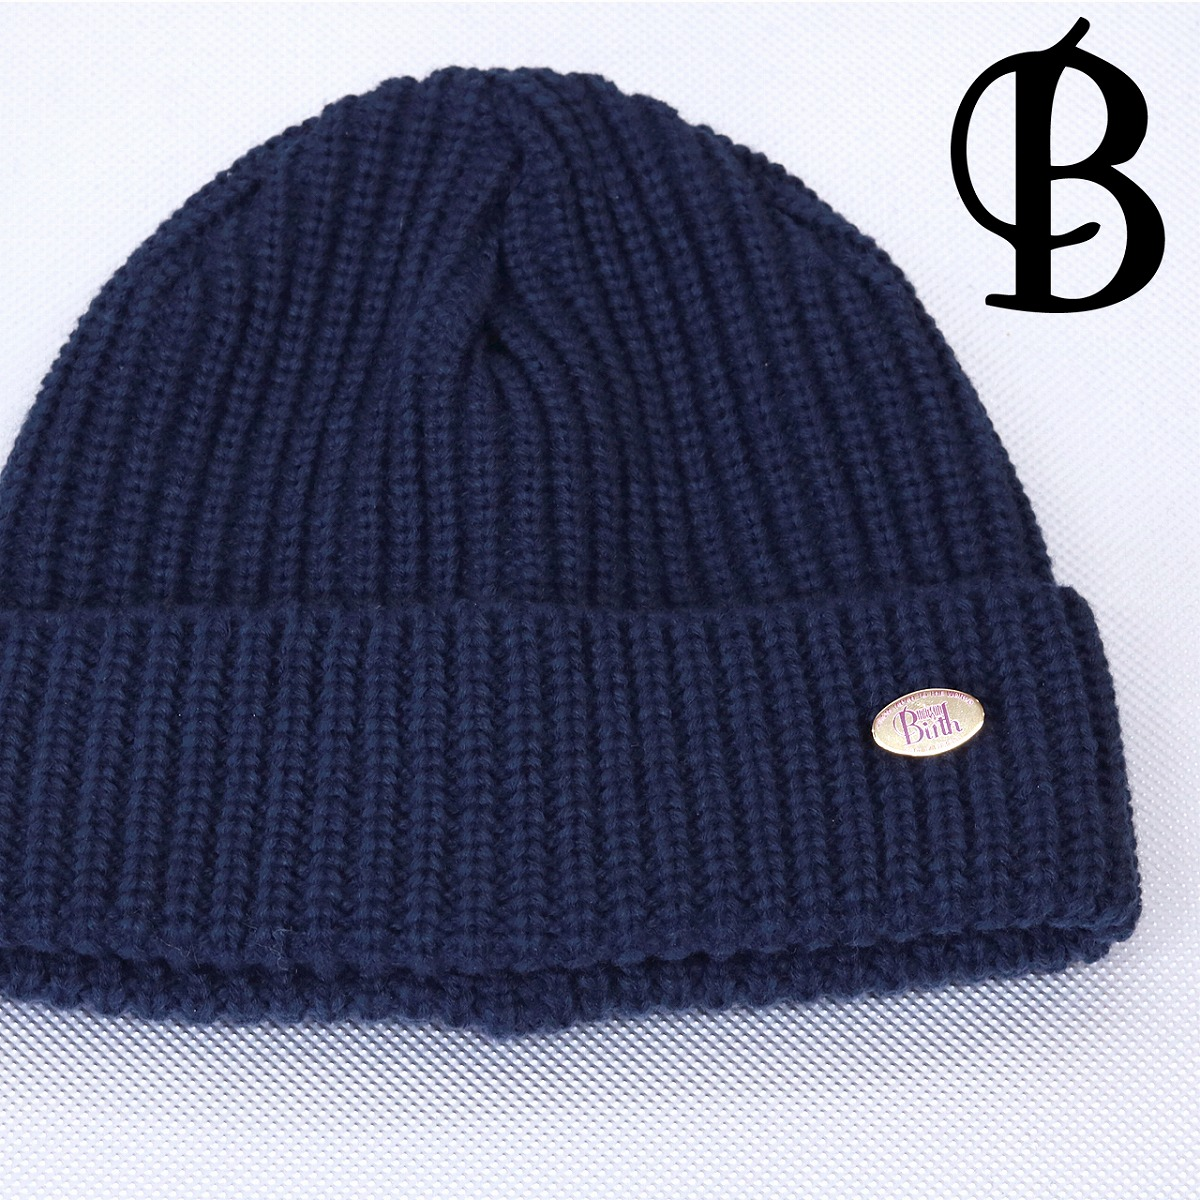 Casual   dark blue navy  beanie cap  with the maison birth ニットワッチレディース ... c02bcd65185